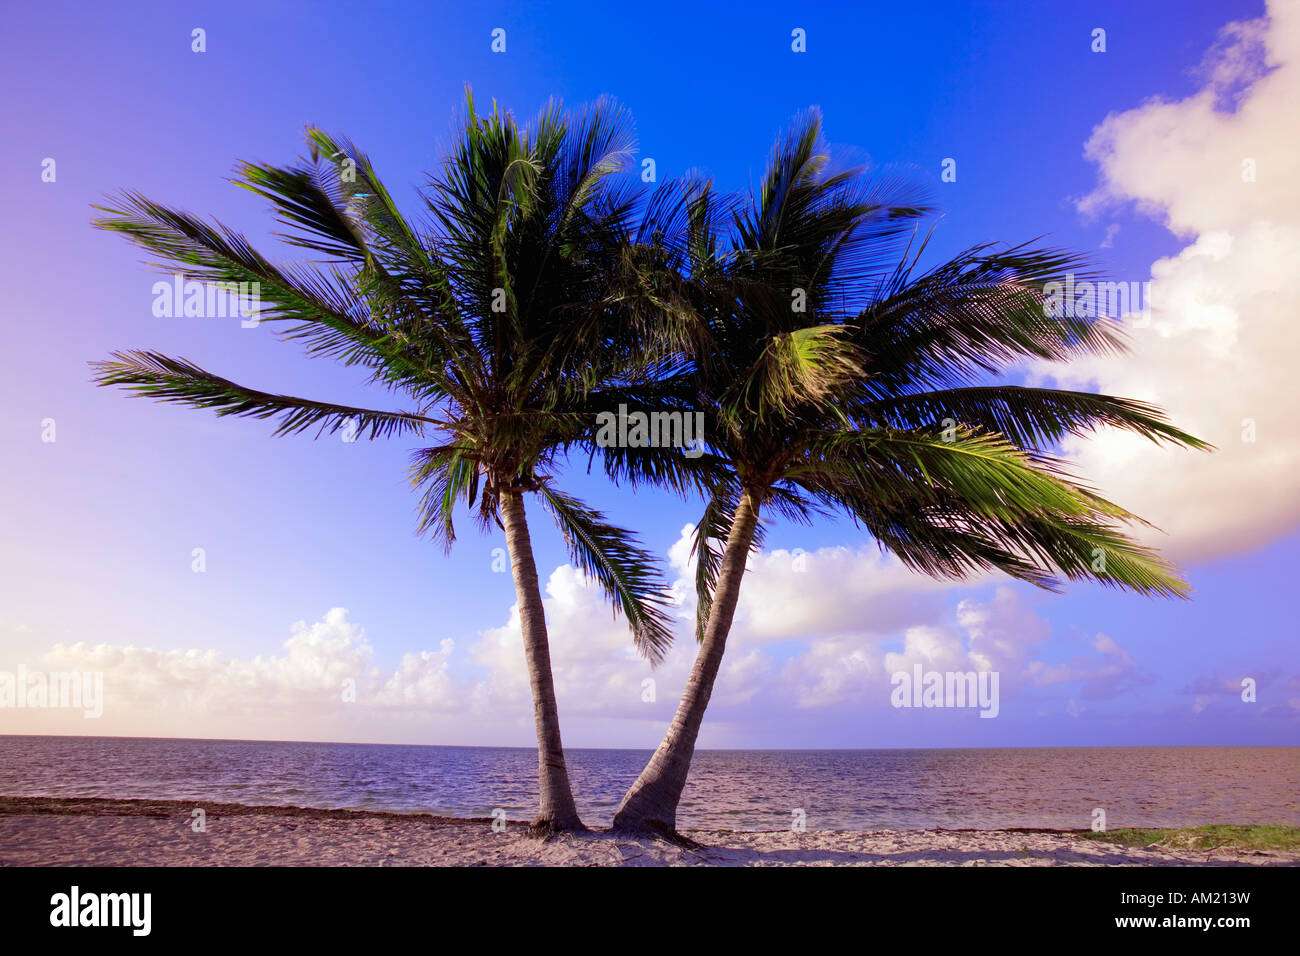 Two palm trees along beach at sunrise in Key West, Florida, USA - Stock Image